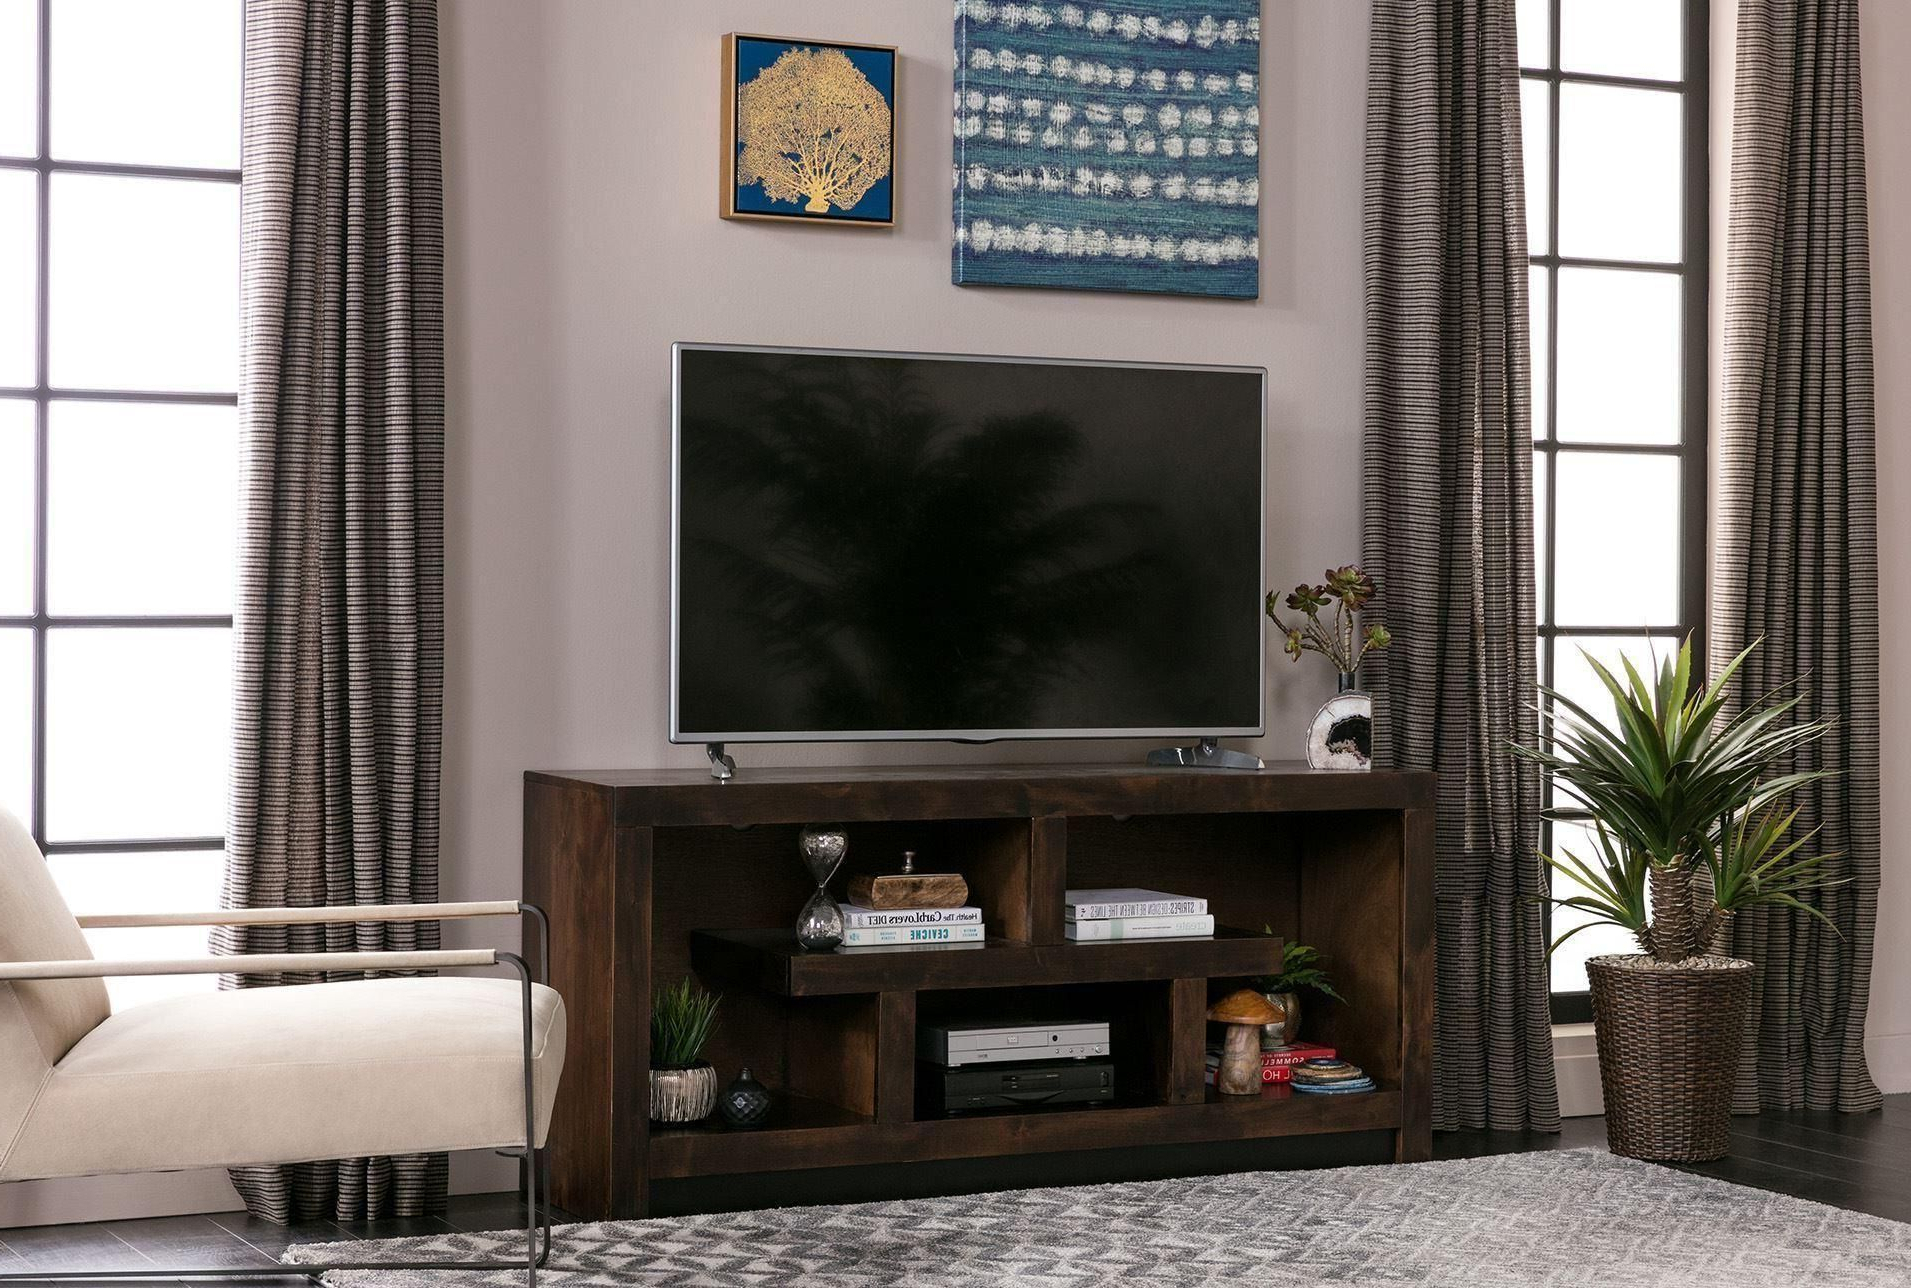 Walton 60 Inch Tv Stand | Rachelle's Redesign | Pinterest | 60 Inch In Walton 60 Inch Tv Stands (Gallery 2 of 20)